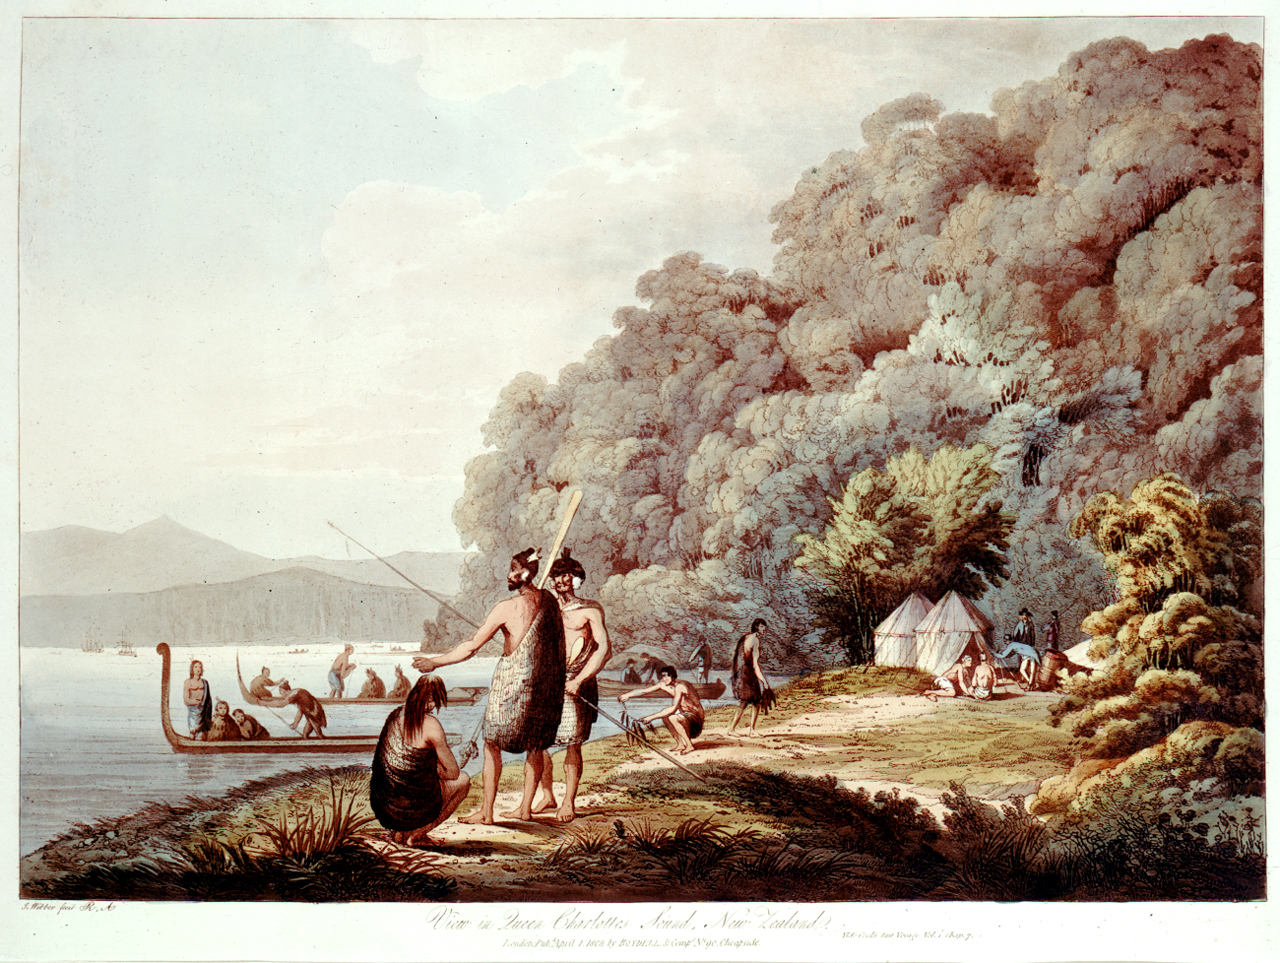 Views in the South Seas from the Drawings of the Late James Webber. View in Queen Charlottes Sound, New Zealand